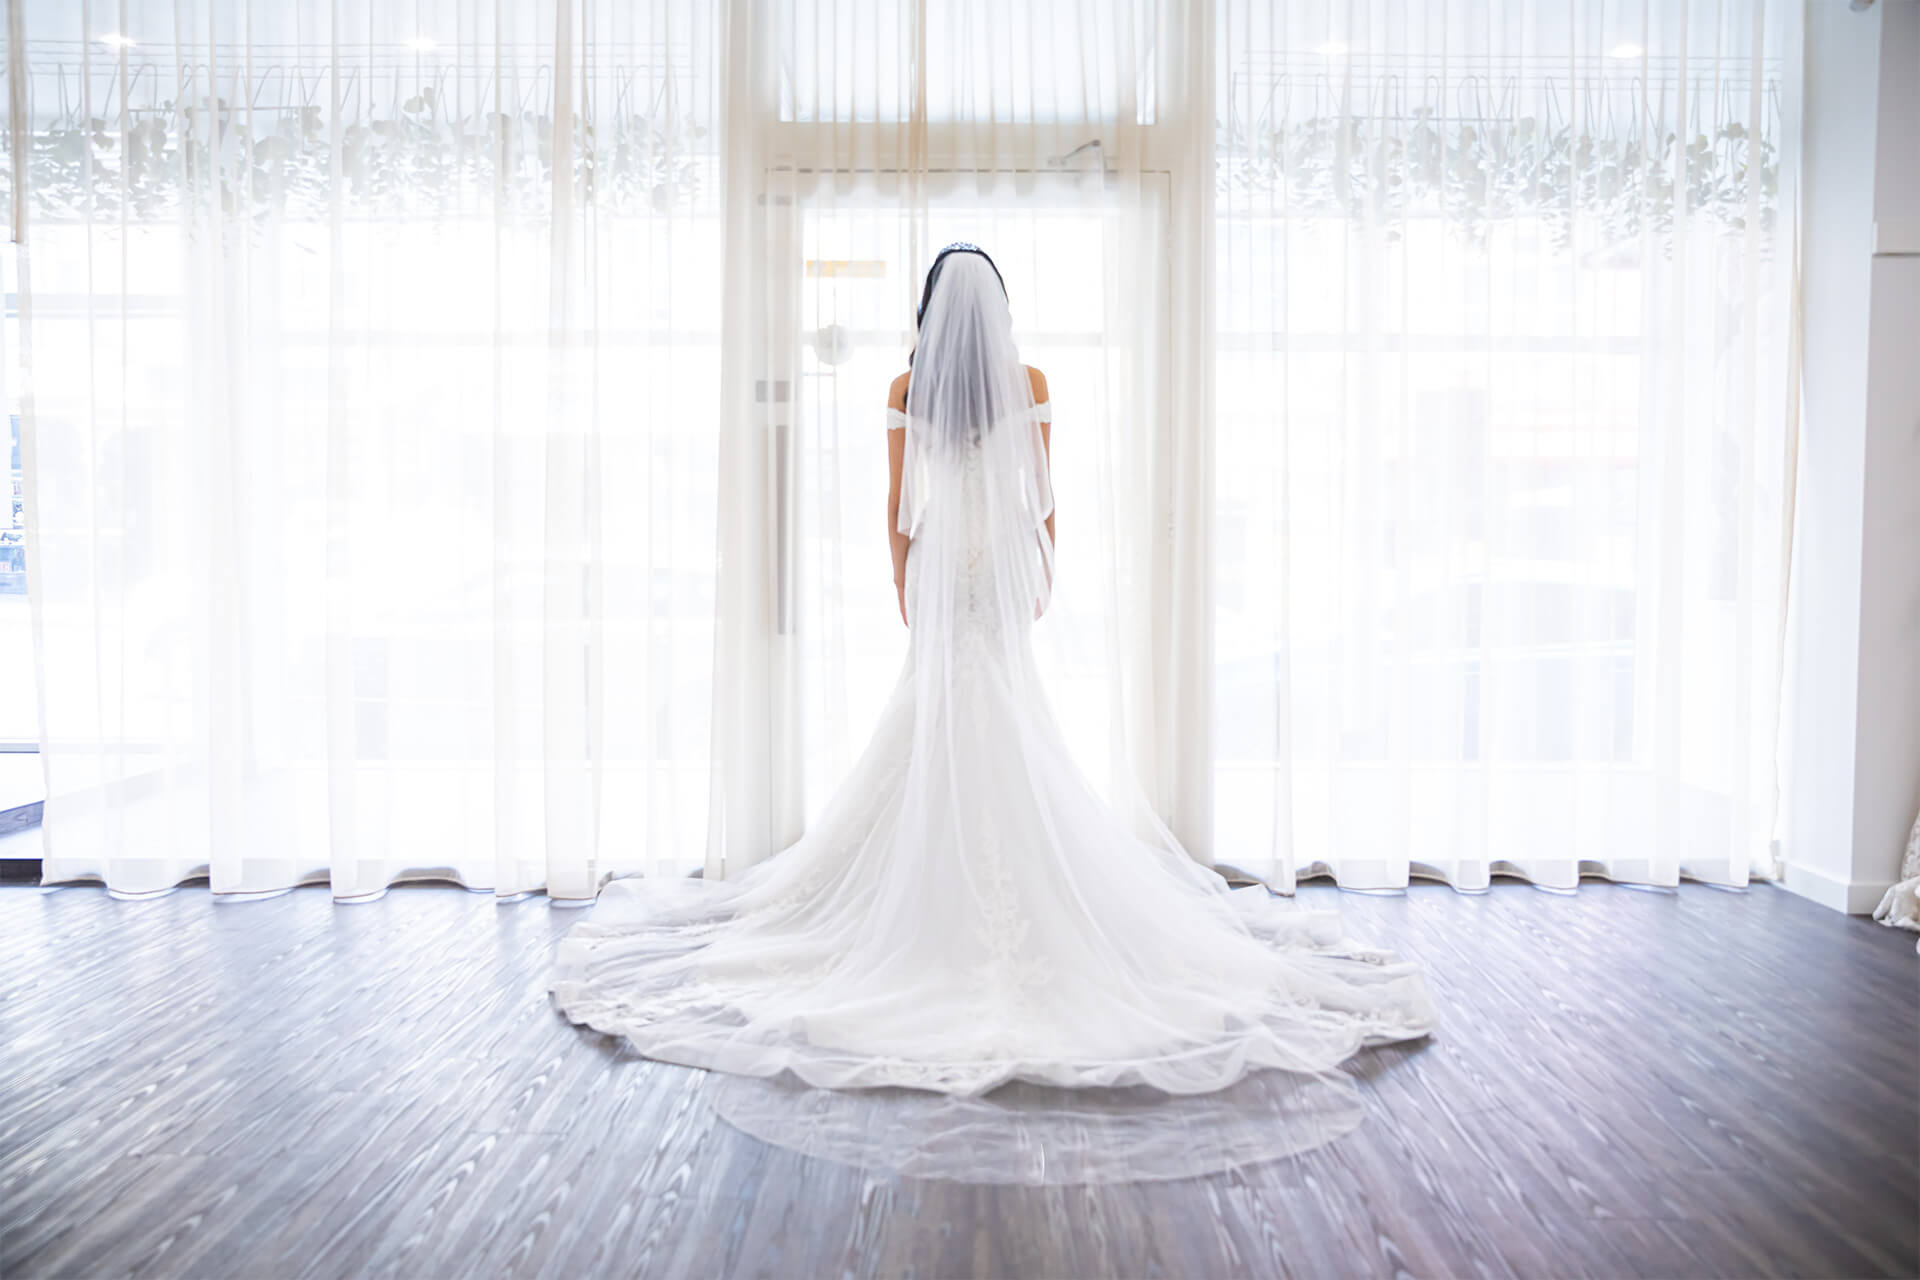 Model in a wedding dress looking out the window with her back turned